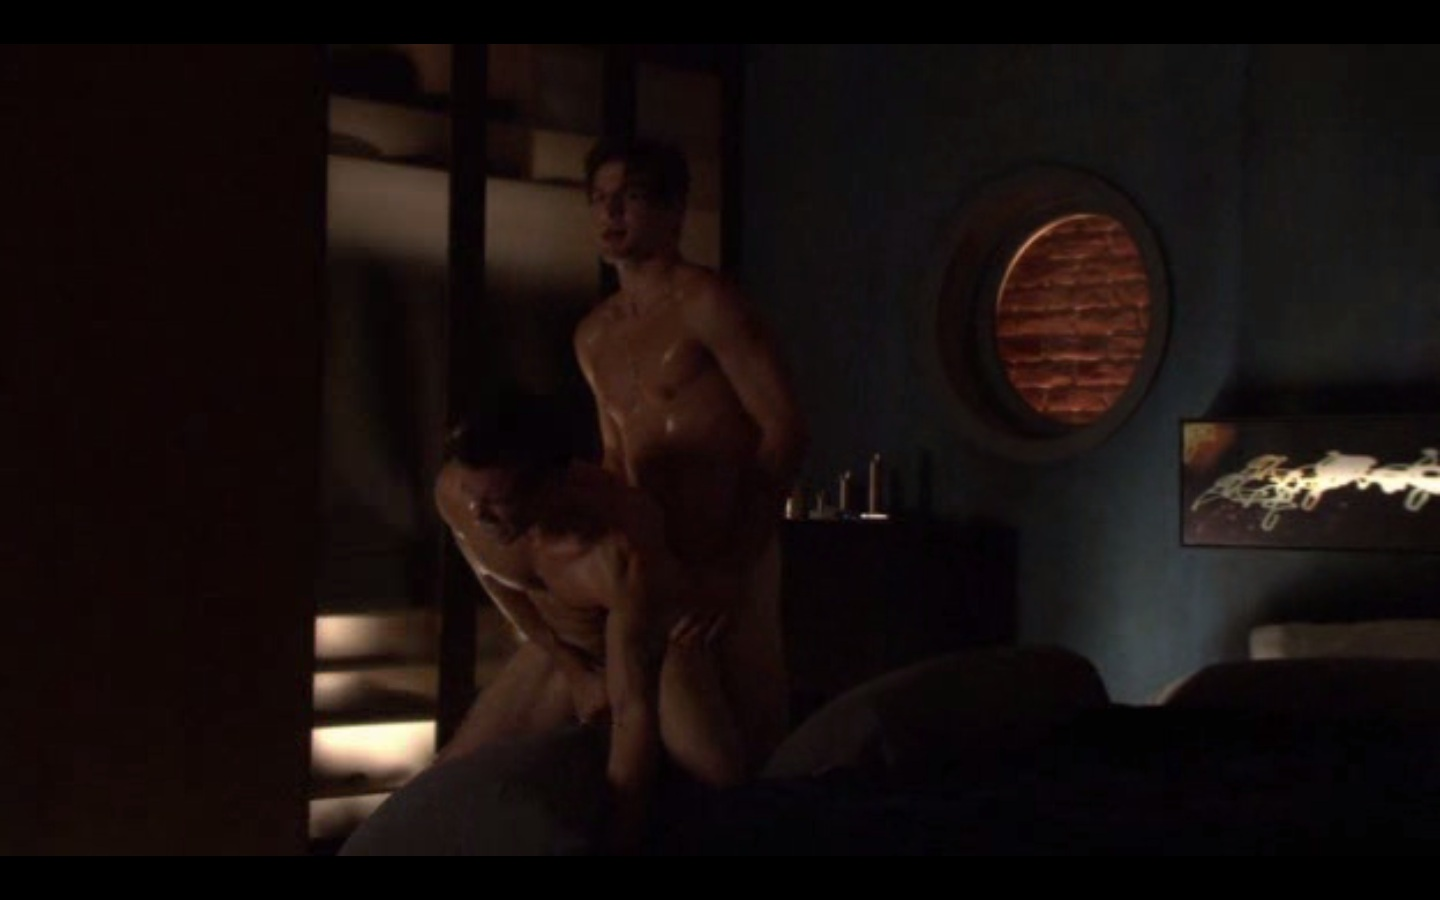 Naked gale harrison harold randy